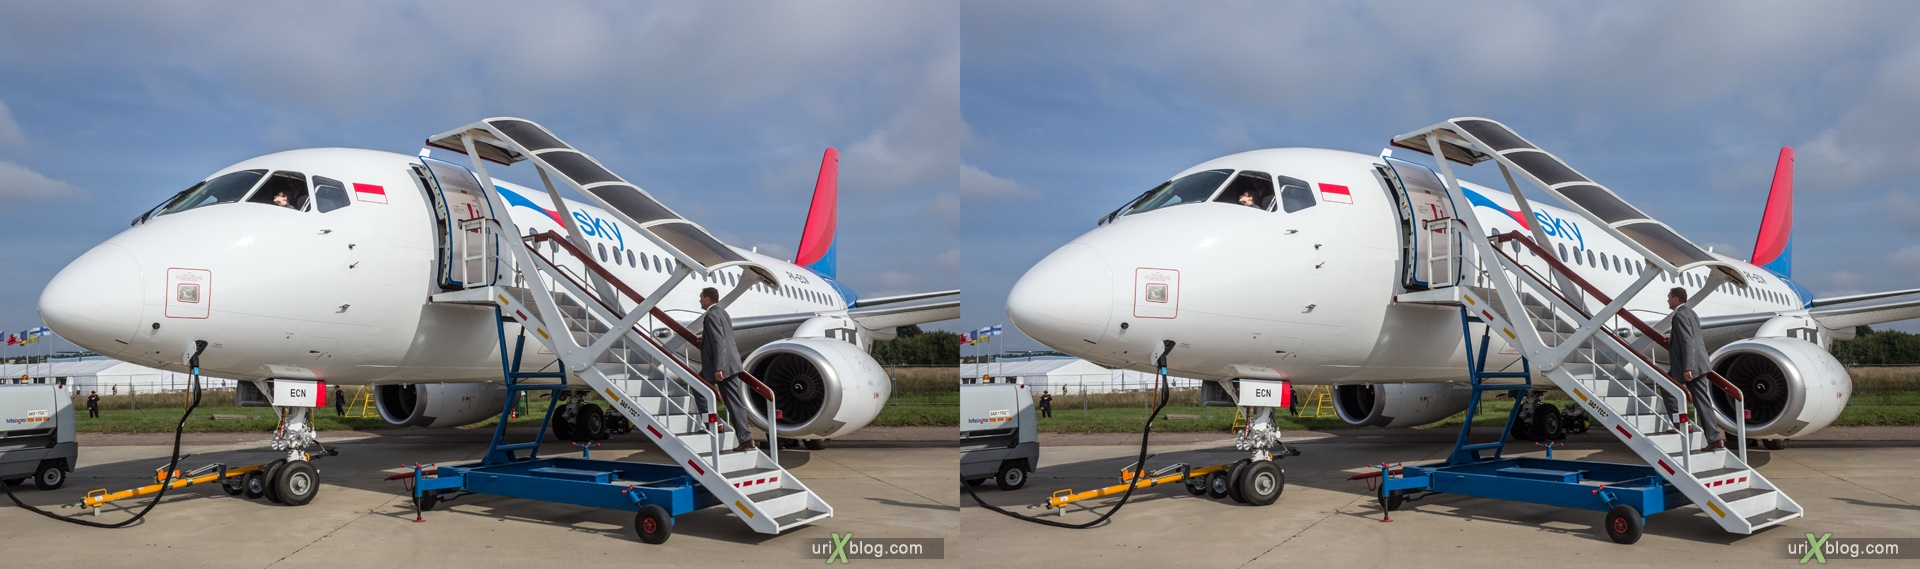 2013, Sukhoi Superjet-100, MAKS, International Aviation and Space Salon, Russia, Ramenskoye airfield, airplane, 3D, stereo pair, cross-eyed, crossview, cross view stereo pair, stereoscopic